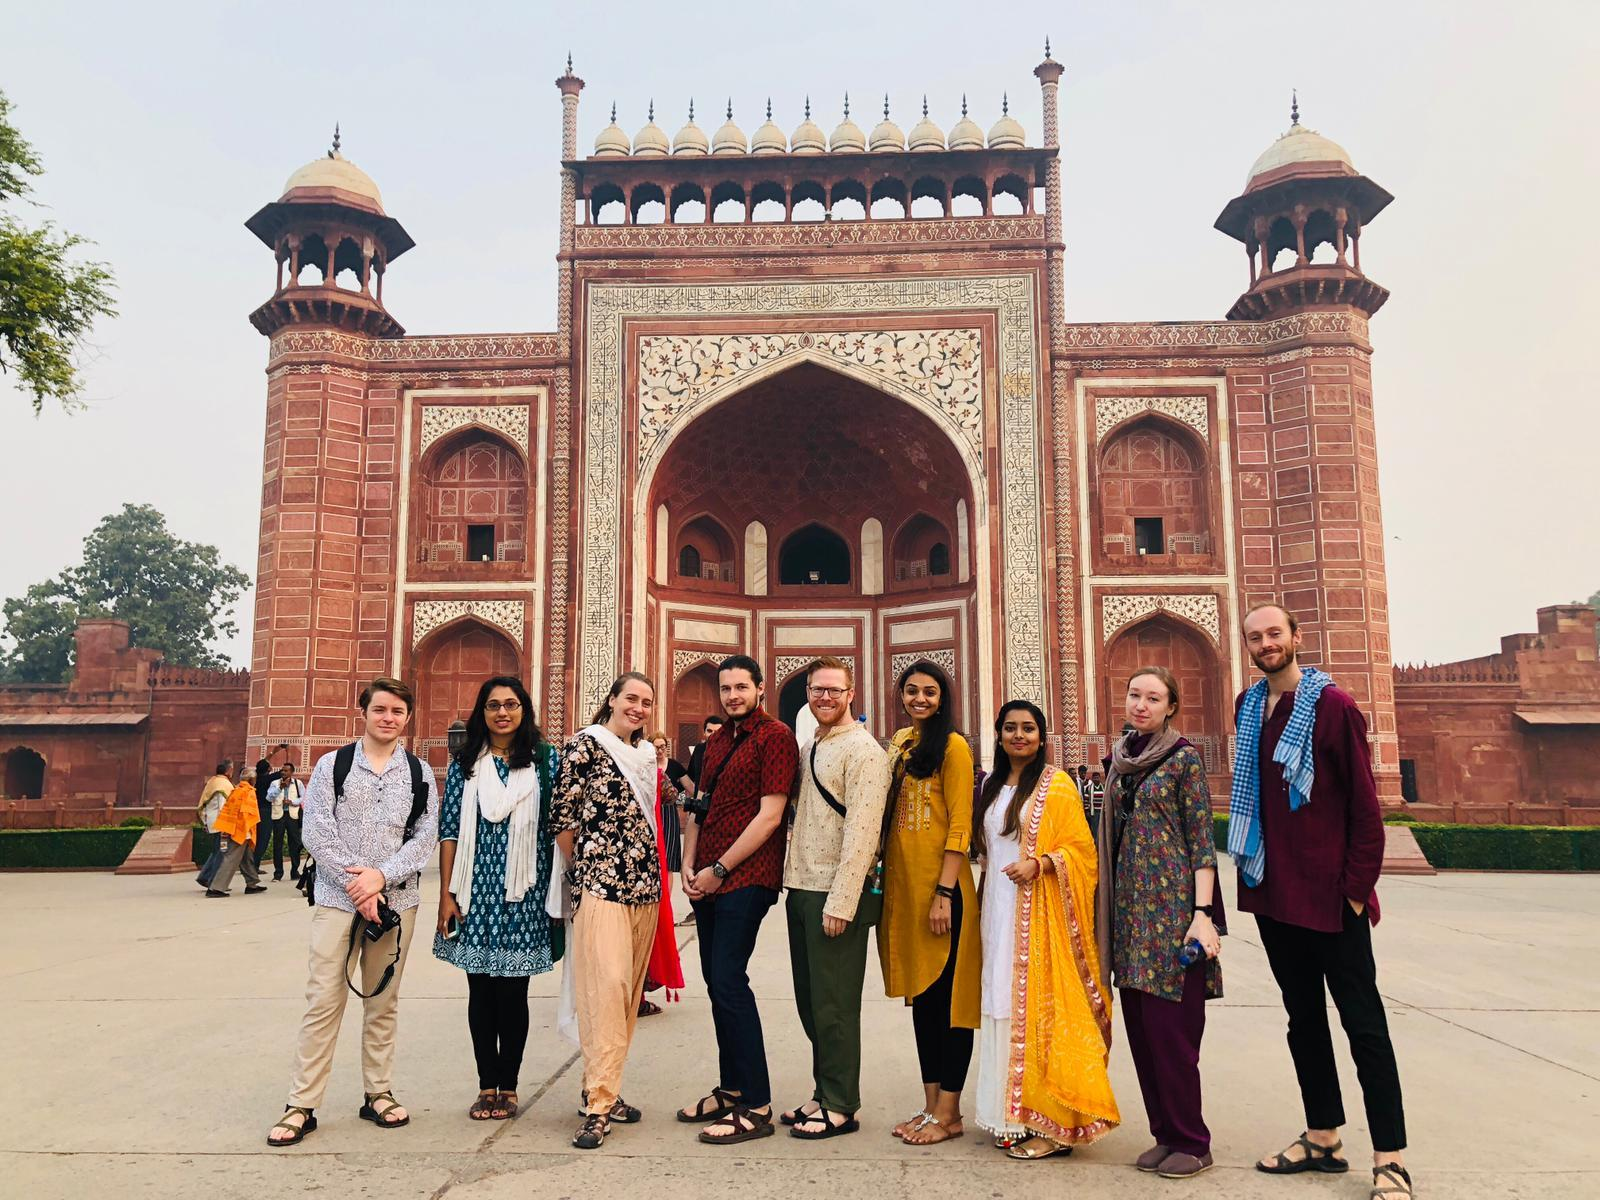 A group of diverse students in traditional Indian dress standing in front of an ancient red and white building building